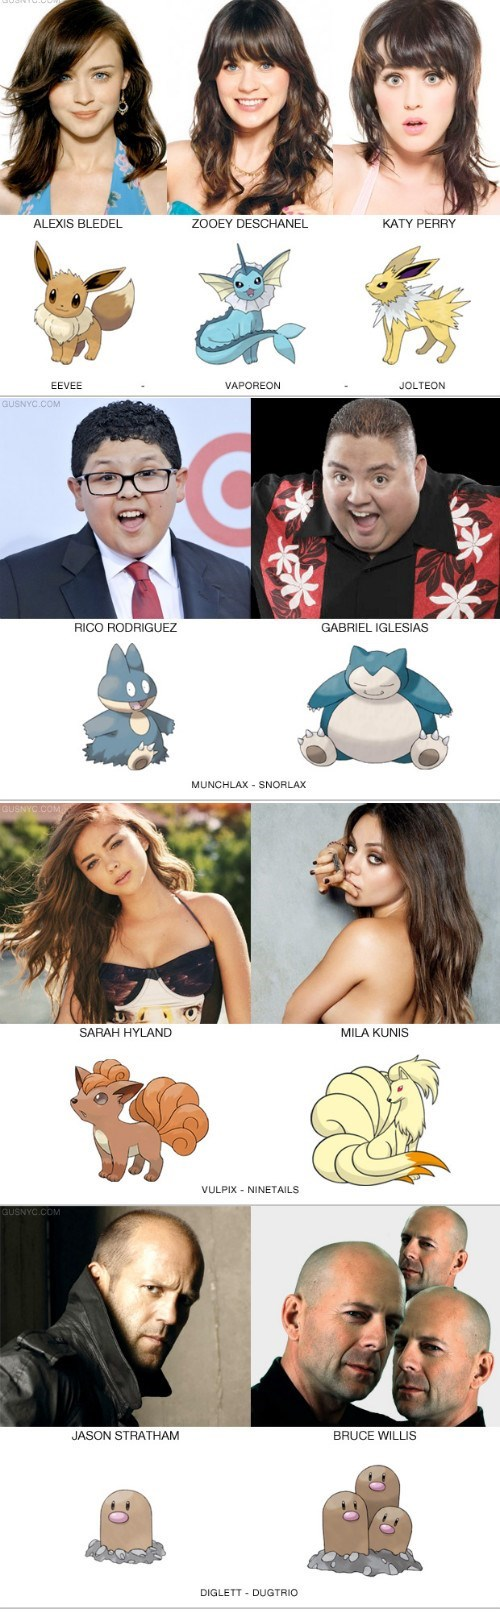 Pokémon katy perry mila kunis bruce willis pokemon evolutions zooey deschanel celeb - 8009150464